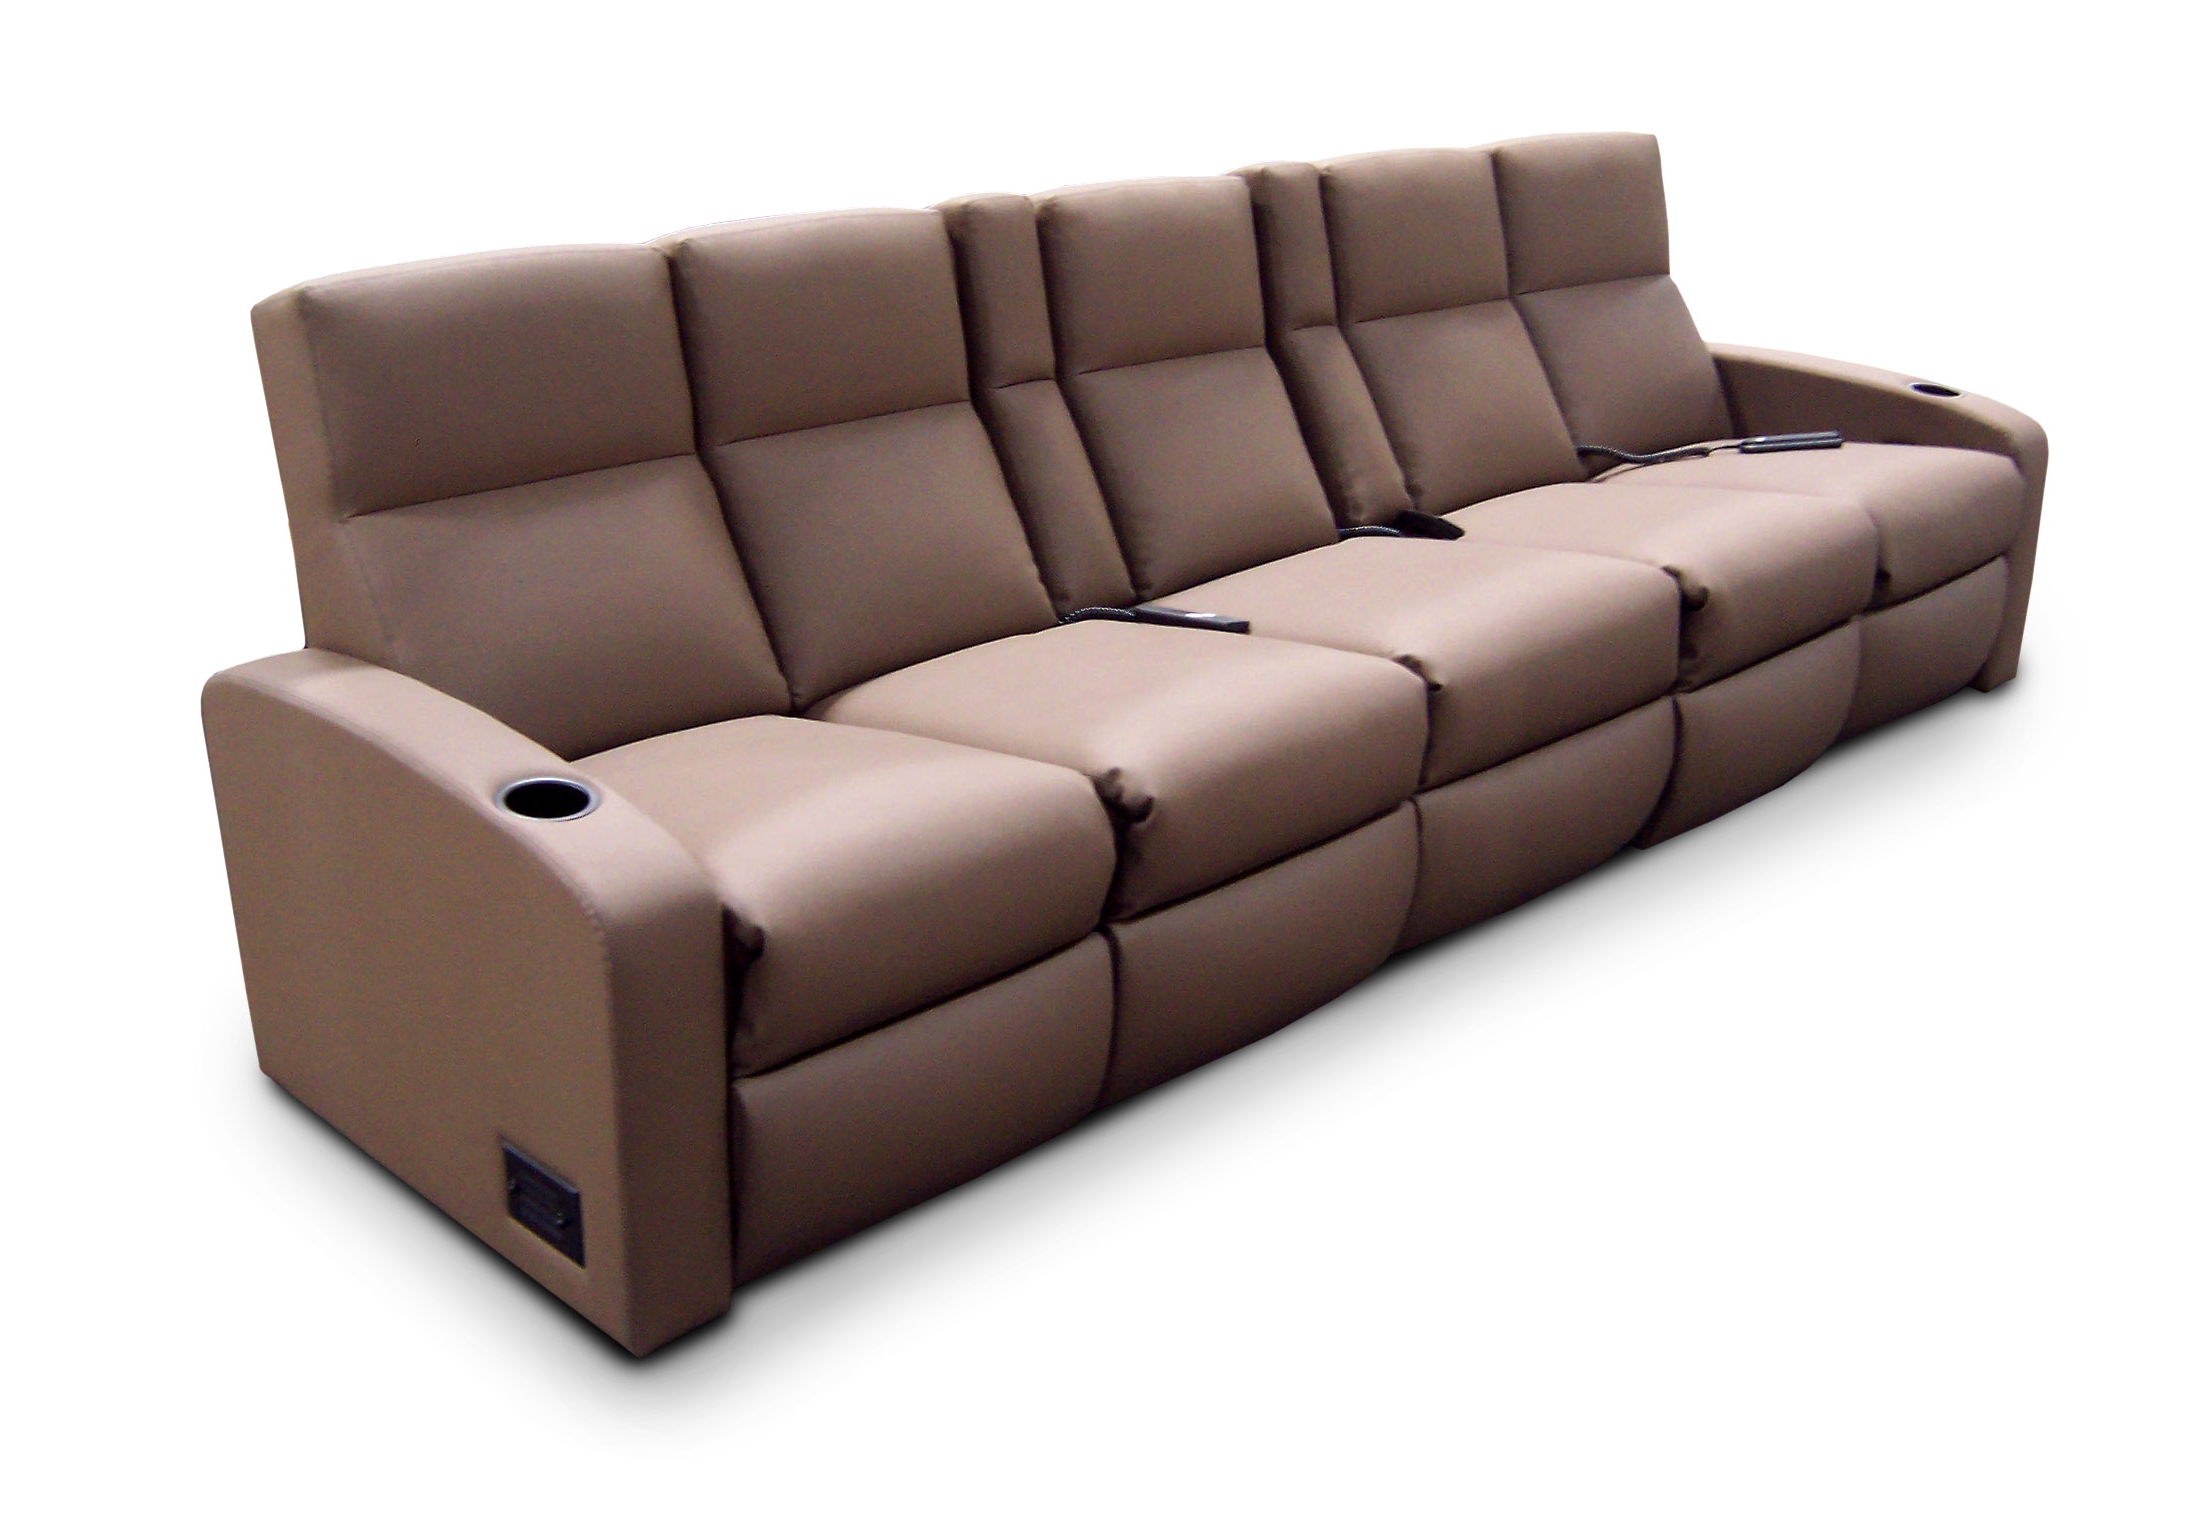 Dual-single-dual, center pocket arm unit, chaise footrest; aisle light, electric outlet and ethernet port - outside arm; storage in outside arm